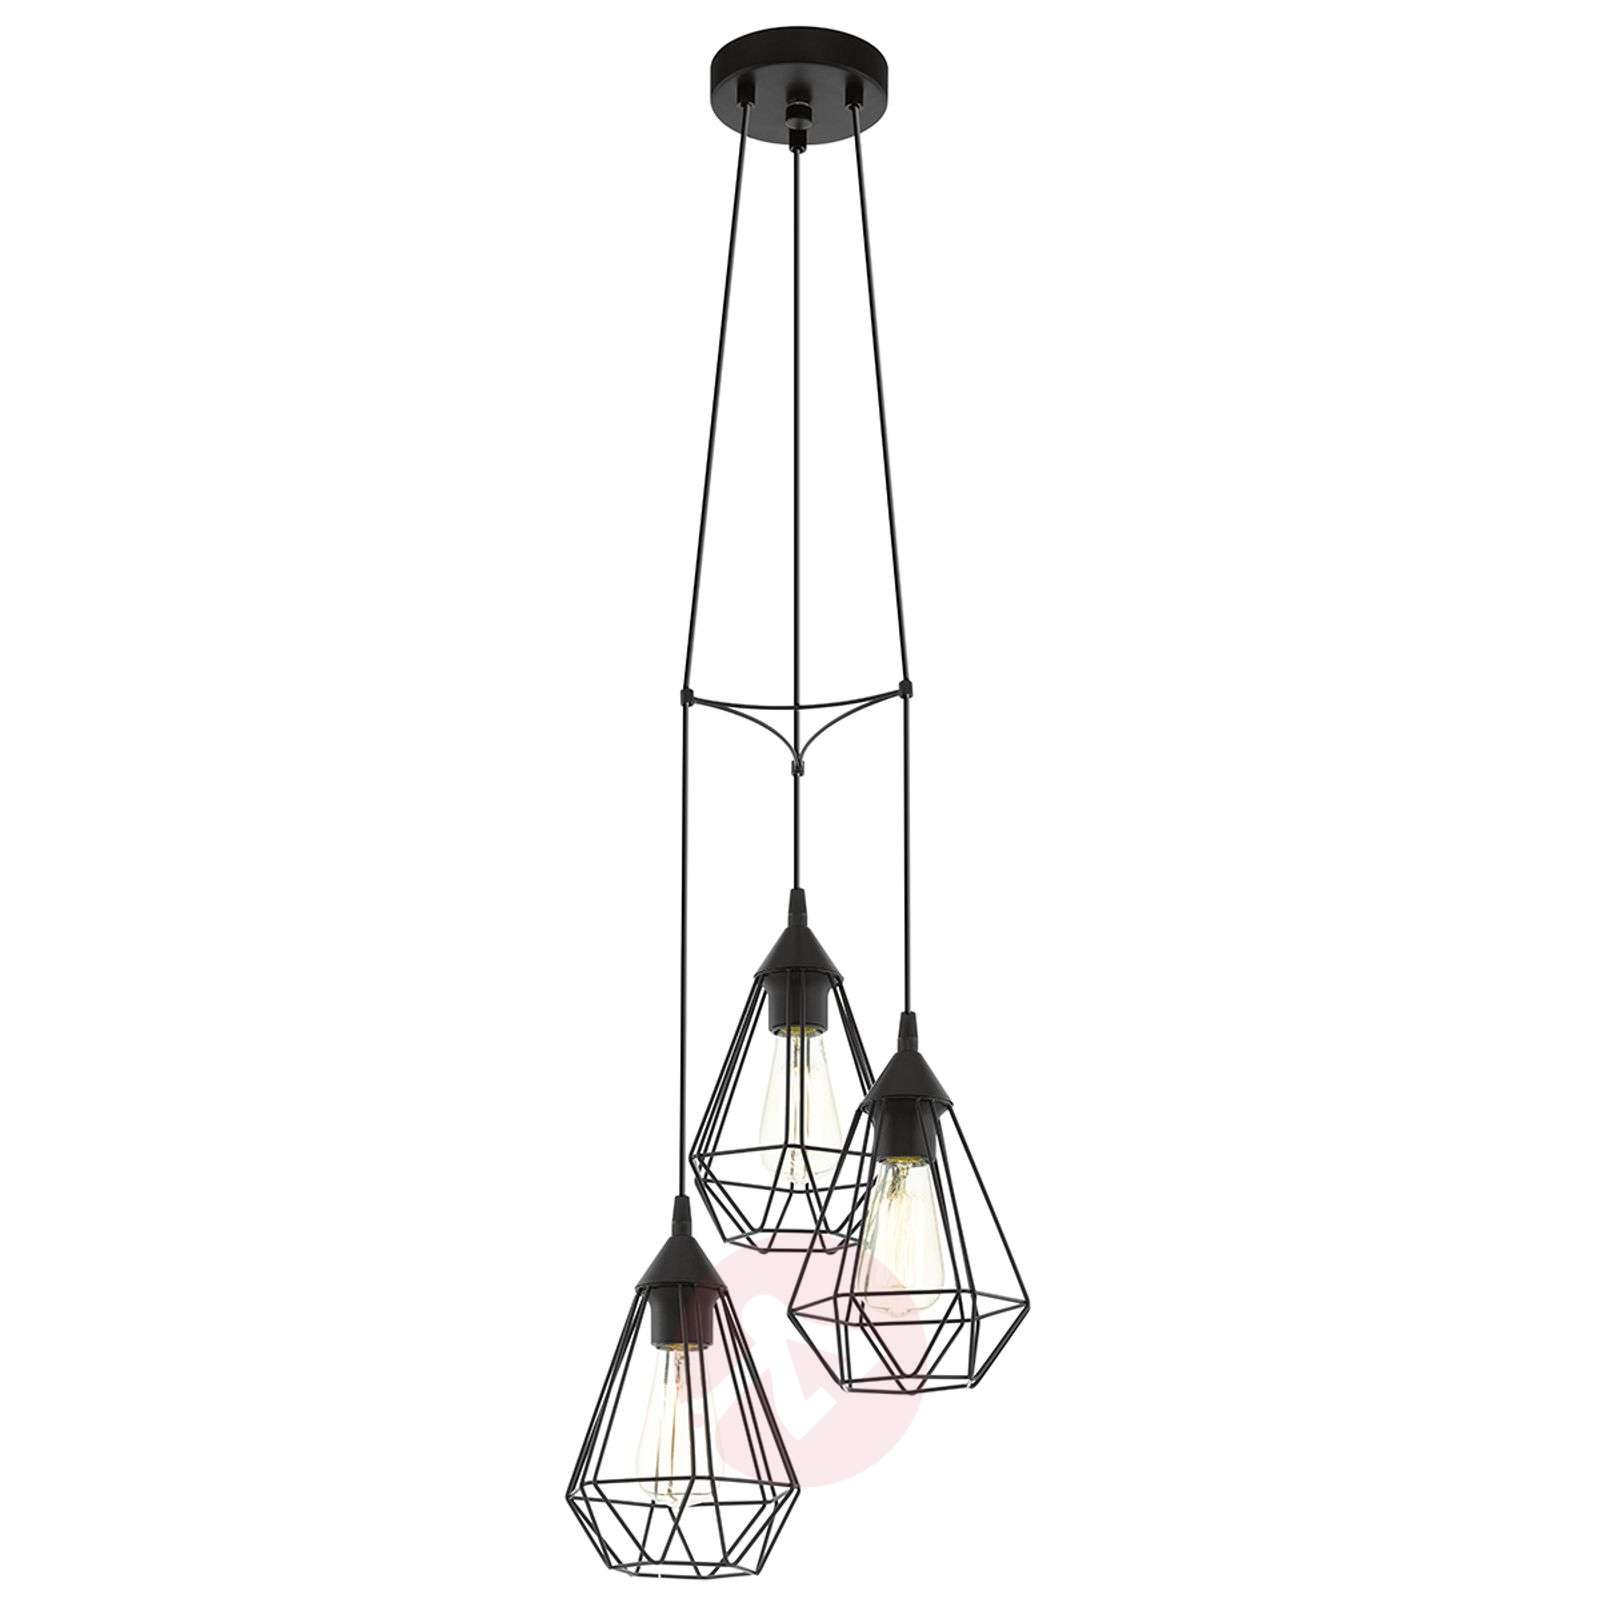 light general b pendant vintage e en by architonic lighting product leds from